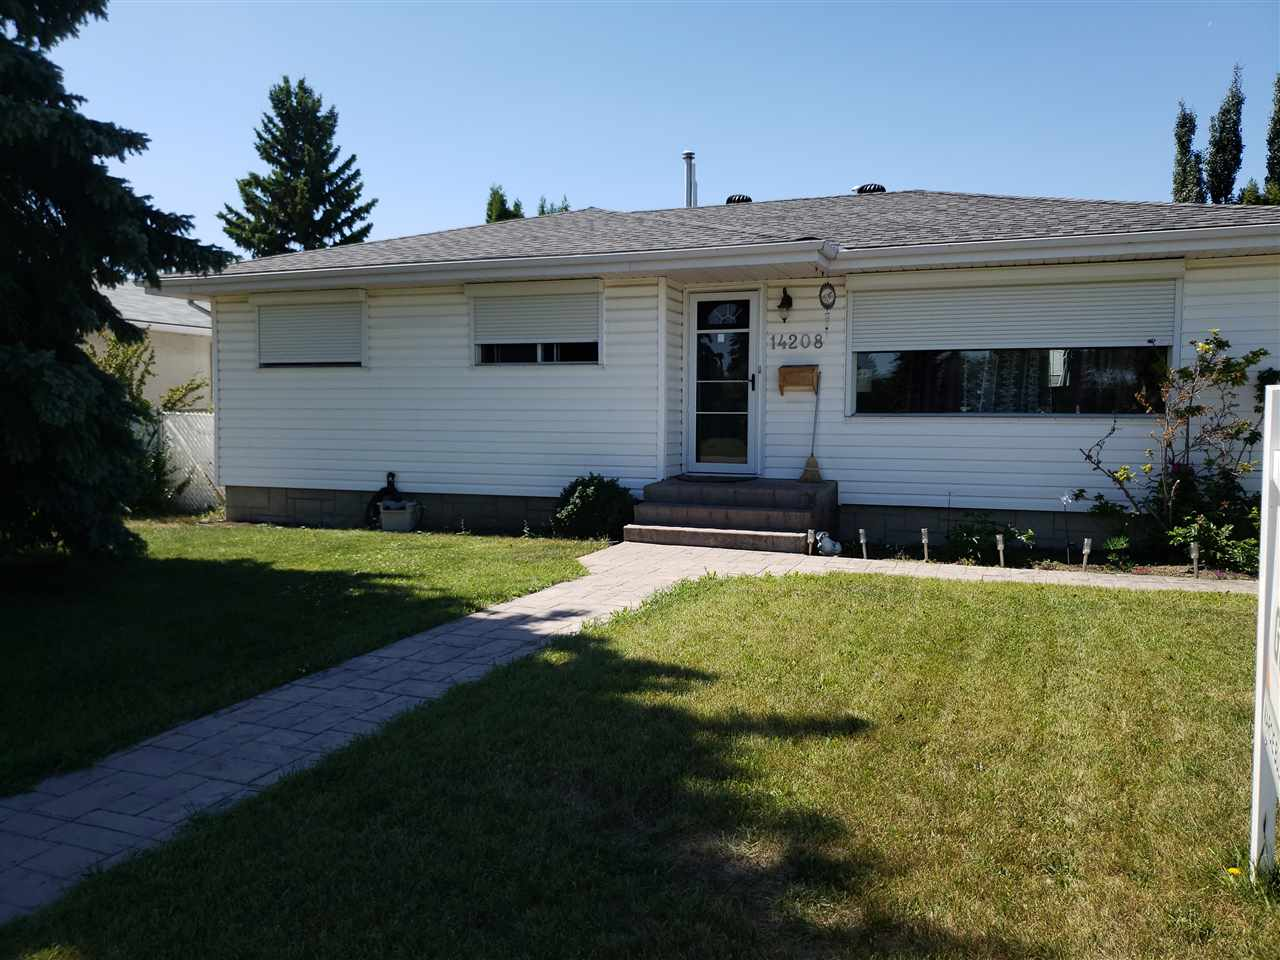 MLS® listing #E4158640 for sale located at 14208 57 Street